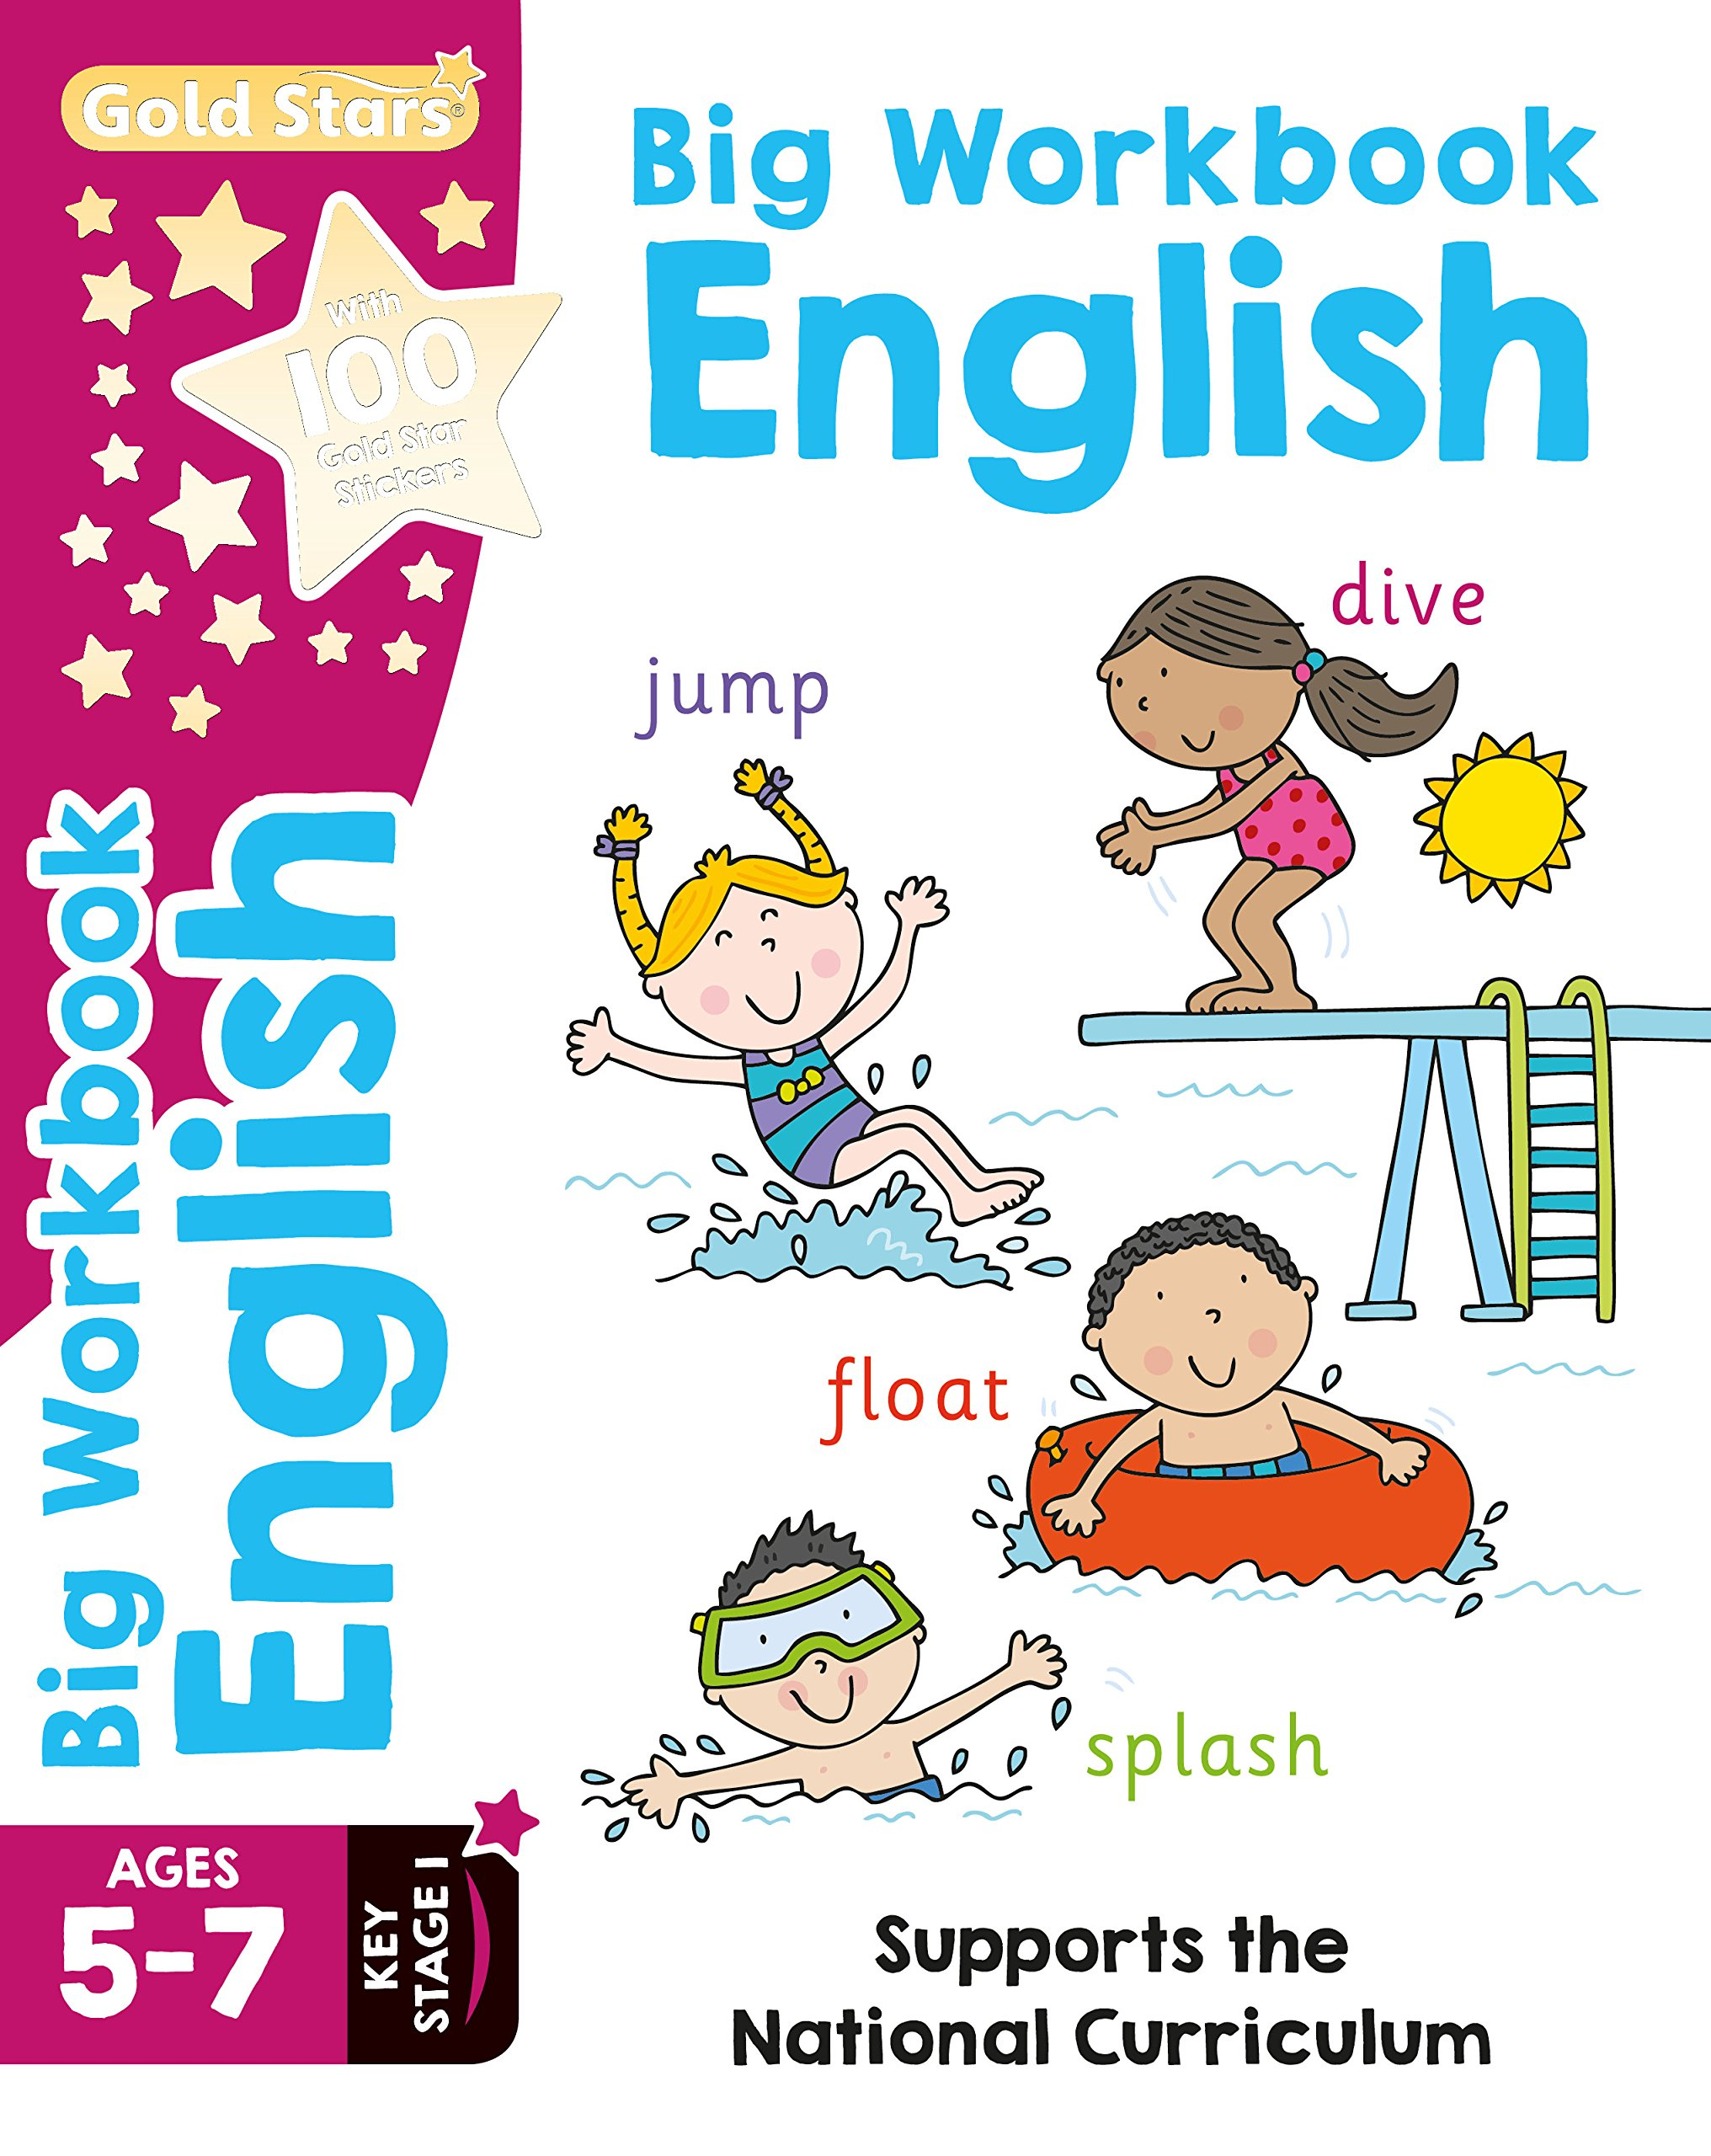 Gold Stars Big Workbook English